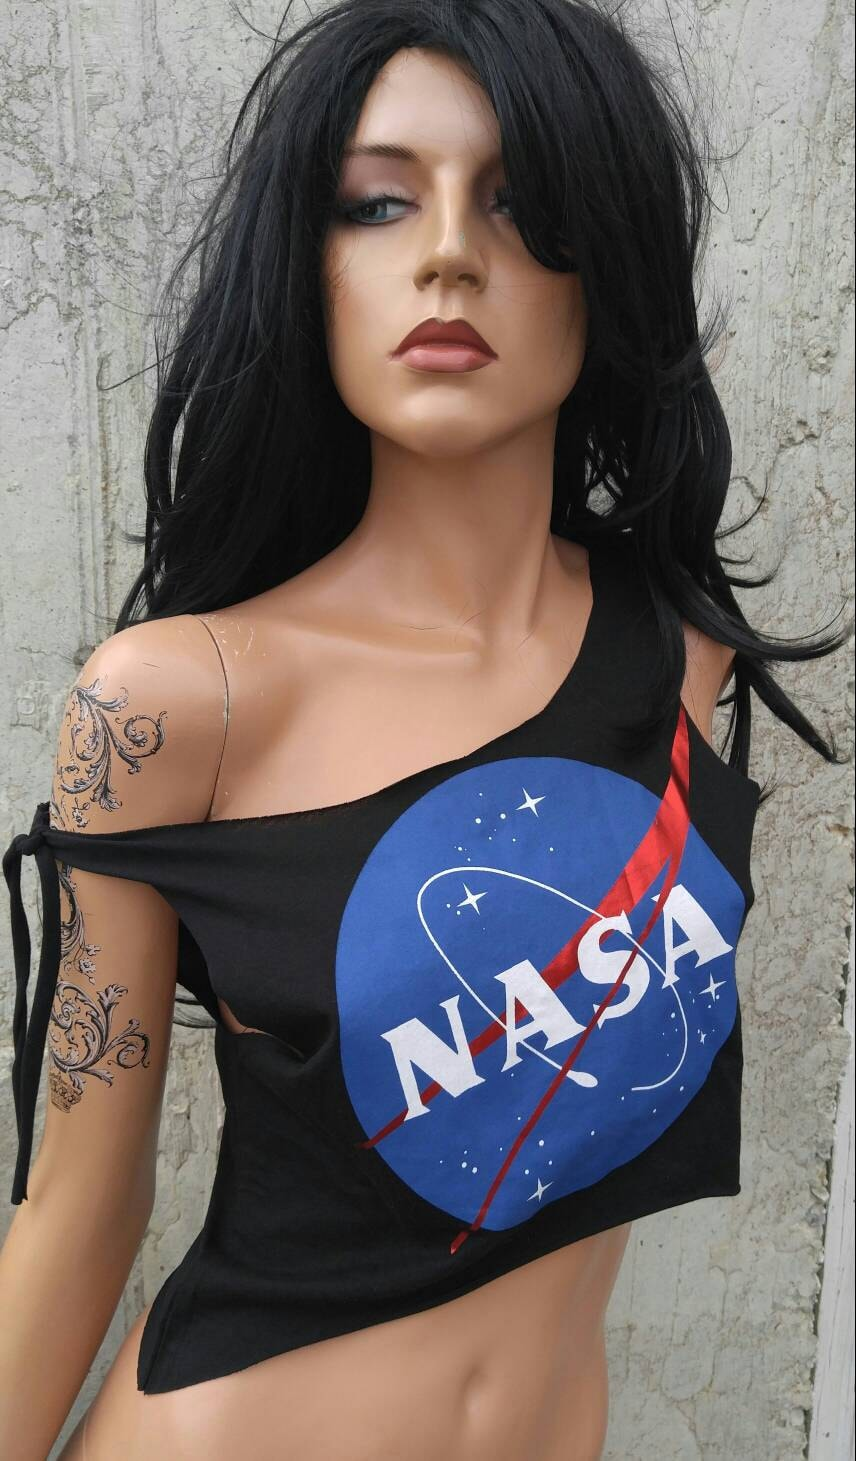 NASA Crop Top Tank Top Shredded Shirt by TShreds on Etsy